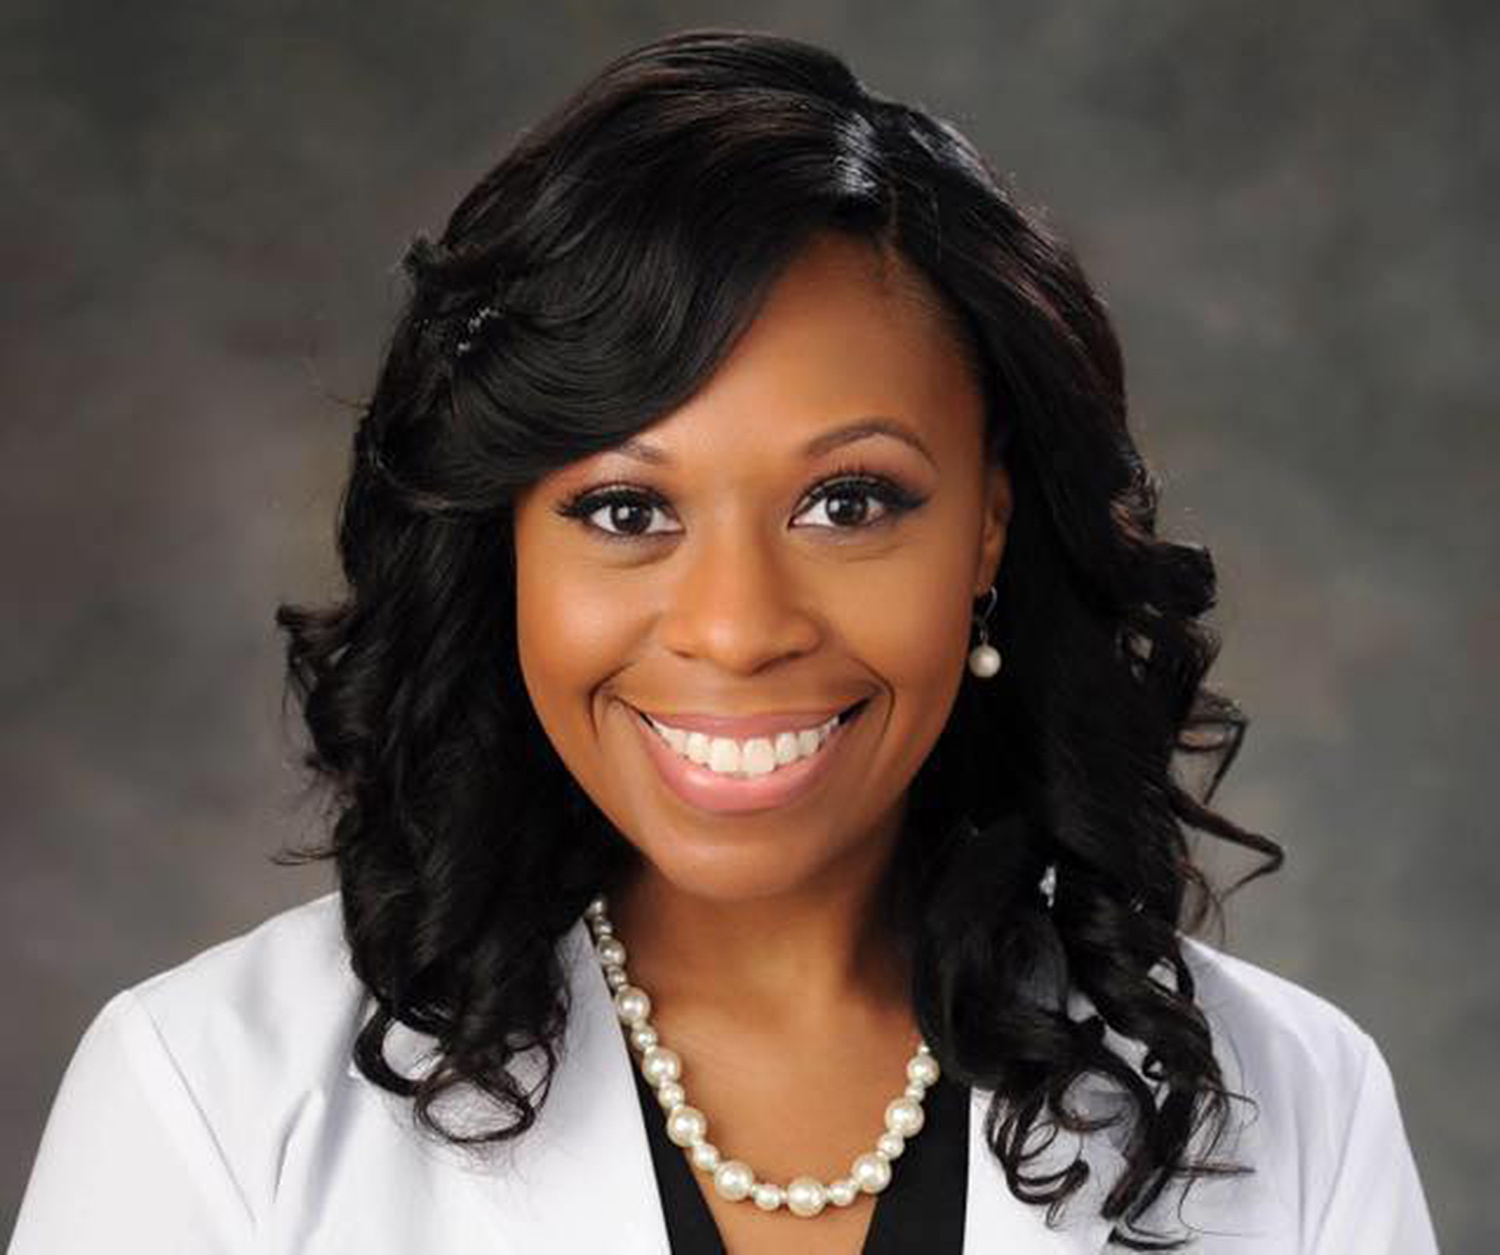 Dr. Chaniece Wallace